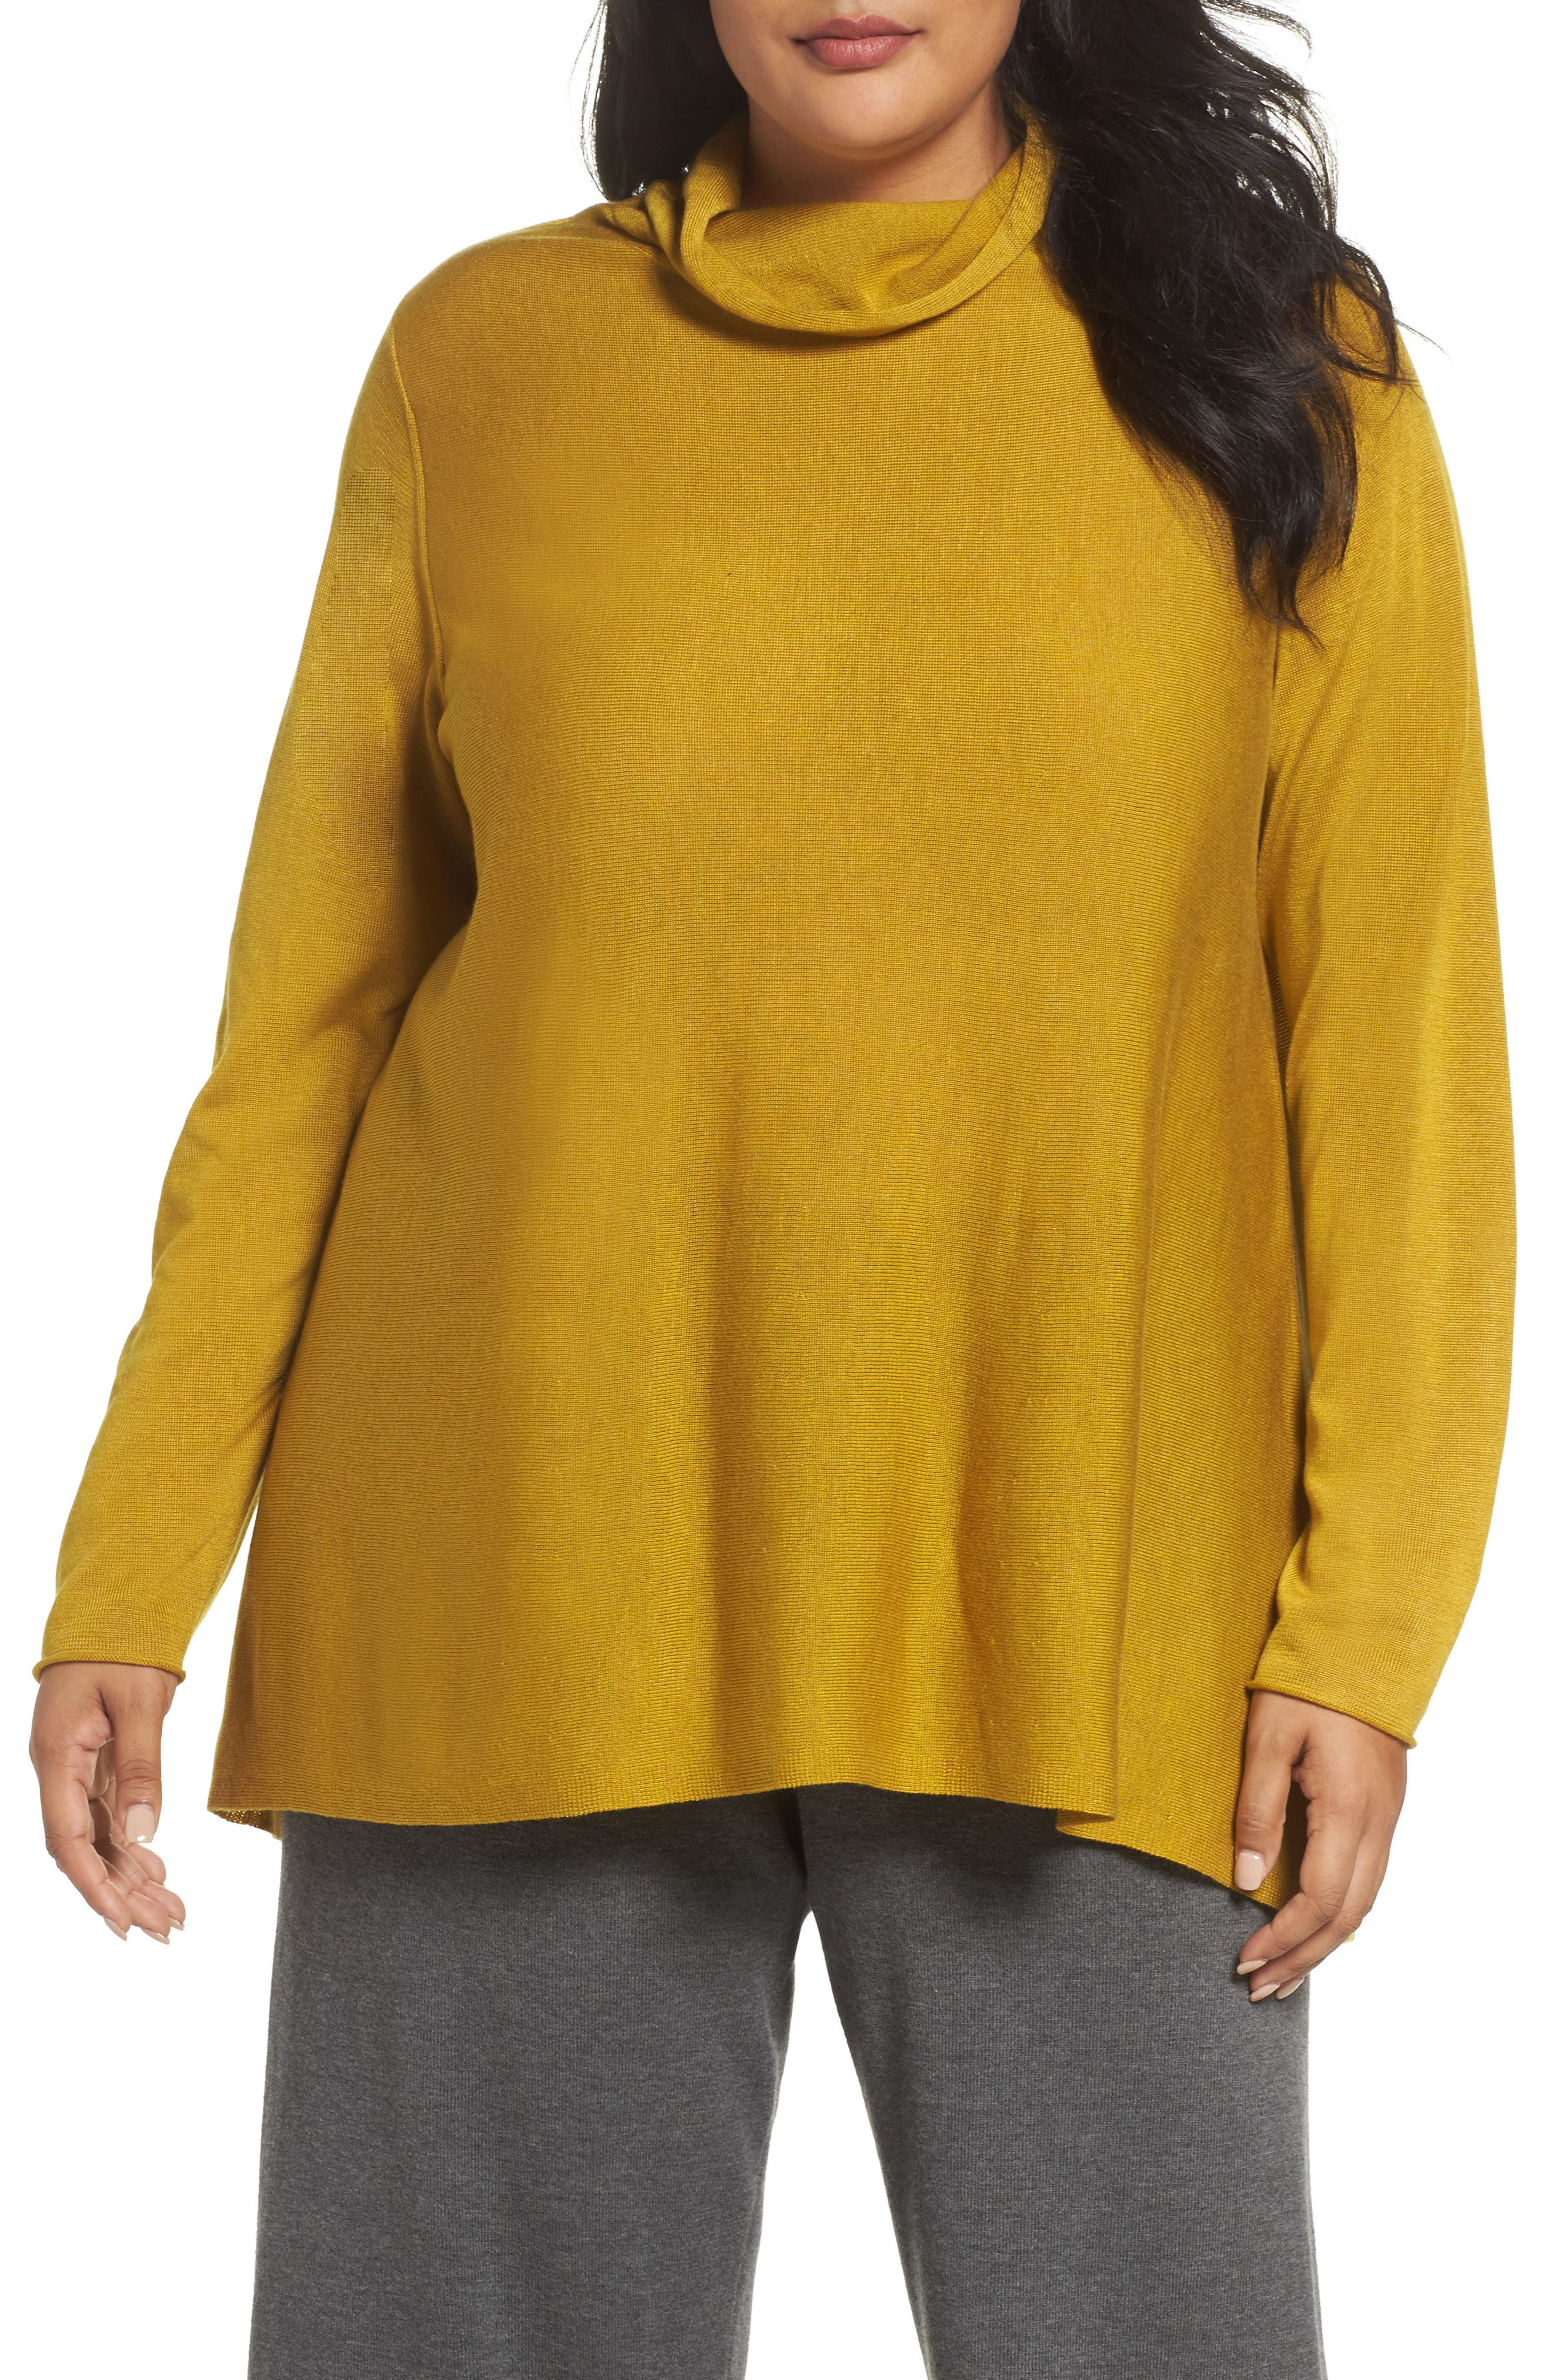 Scrunch Turtleneck Sweater,                             Main thumbnail 1, color,                             Mused